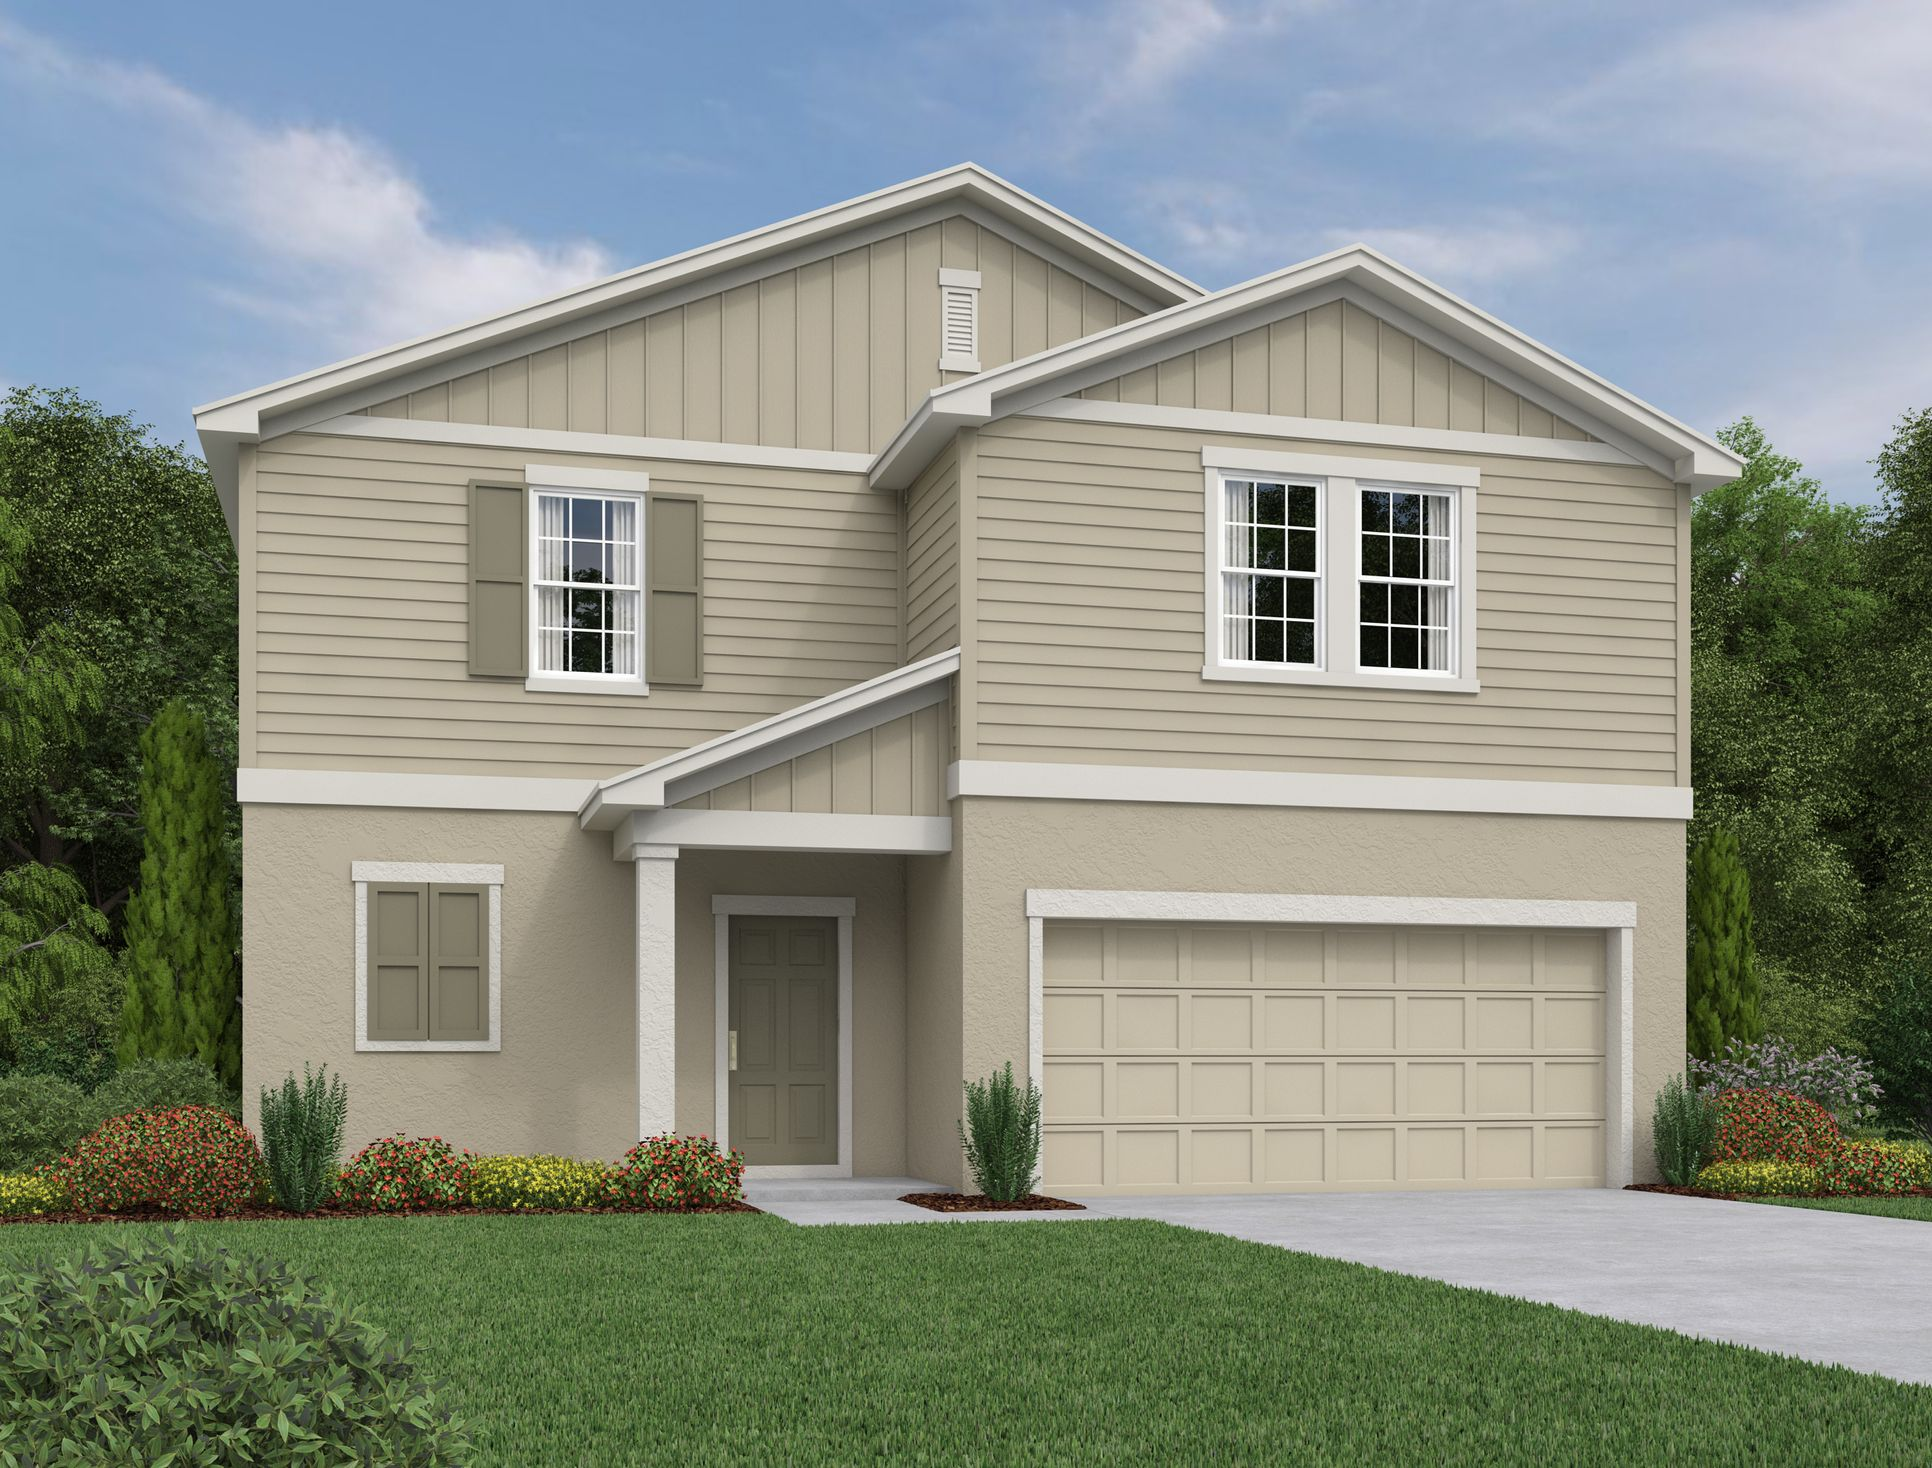 Exterior:Lincoln Oaks - Carlsbad Elevation Image 1